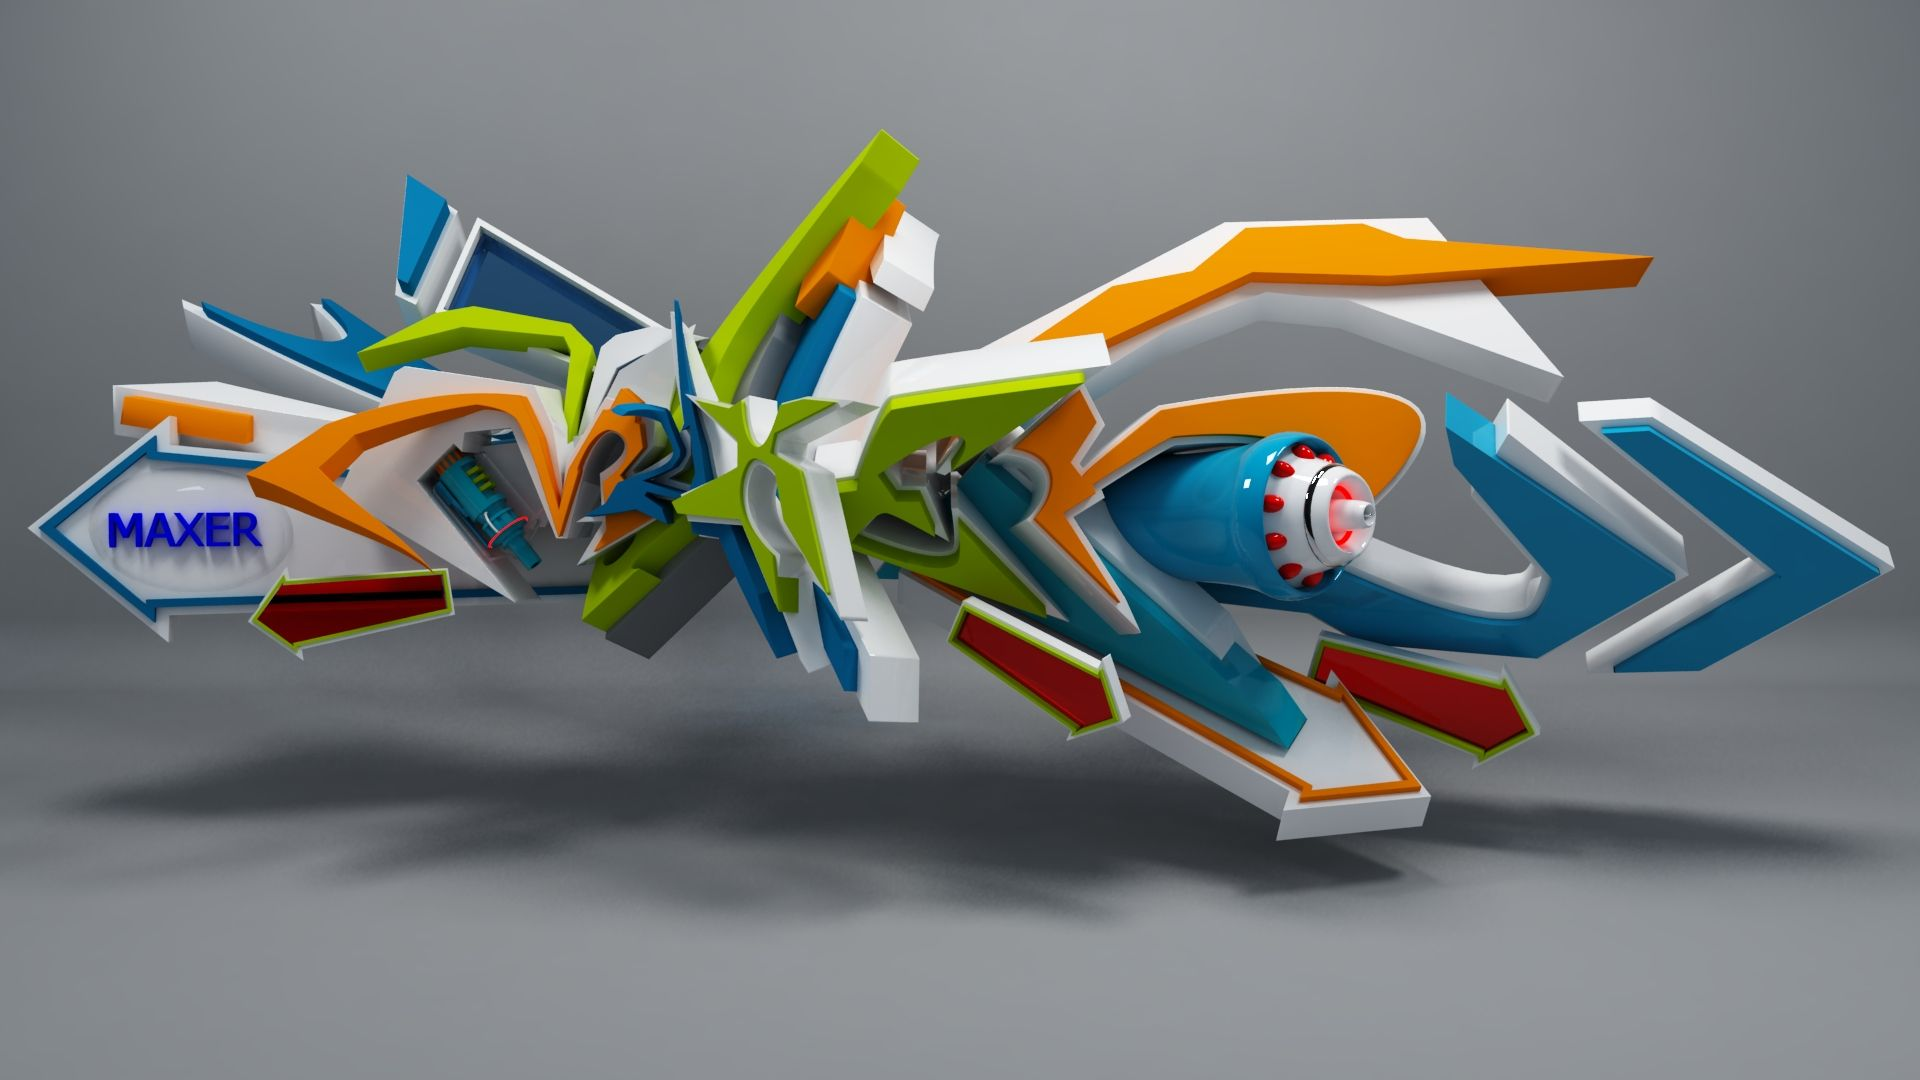 Maxer 3d graffiti by anhpham88 on deviantart via pincgcom